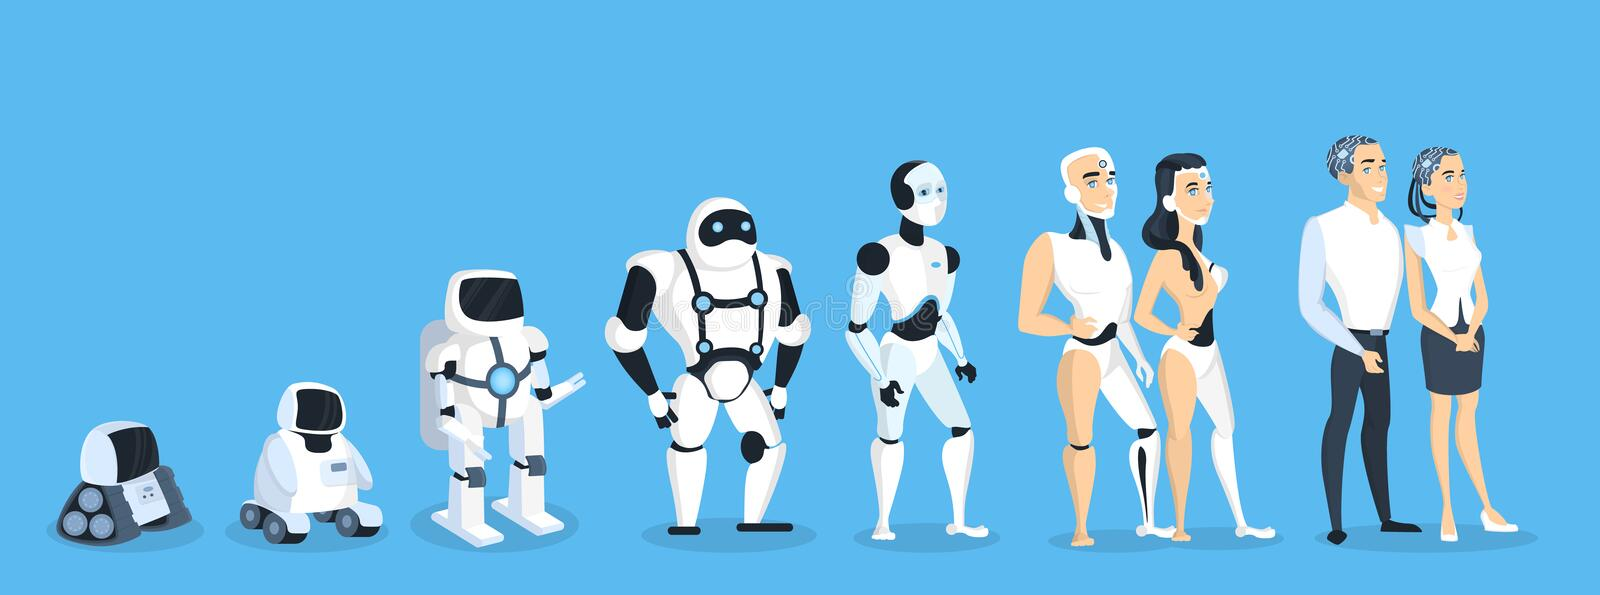 Evolution of robots. royalty free illustration